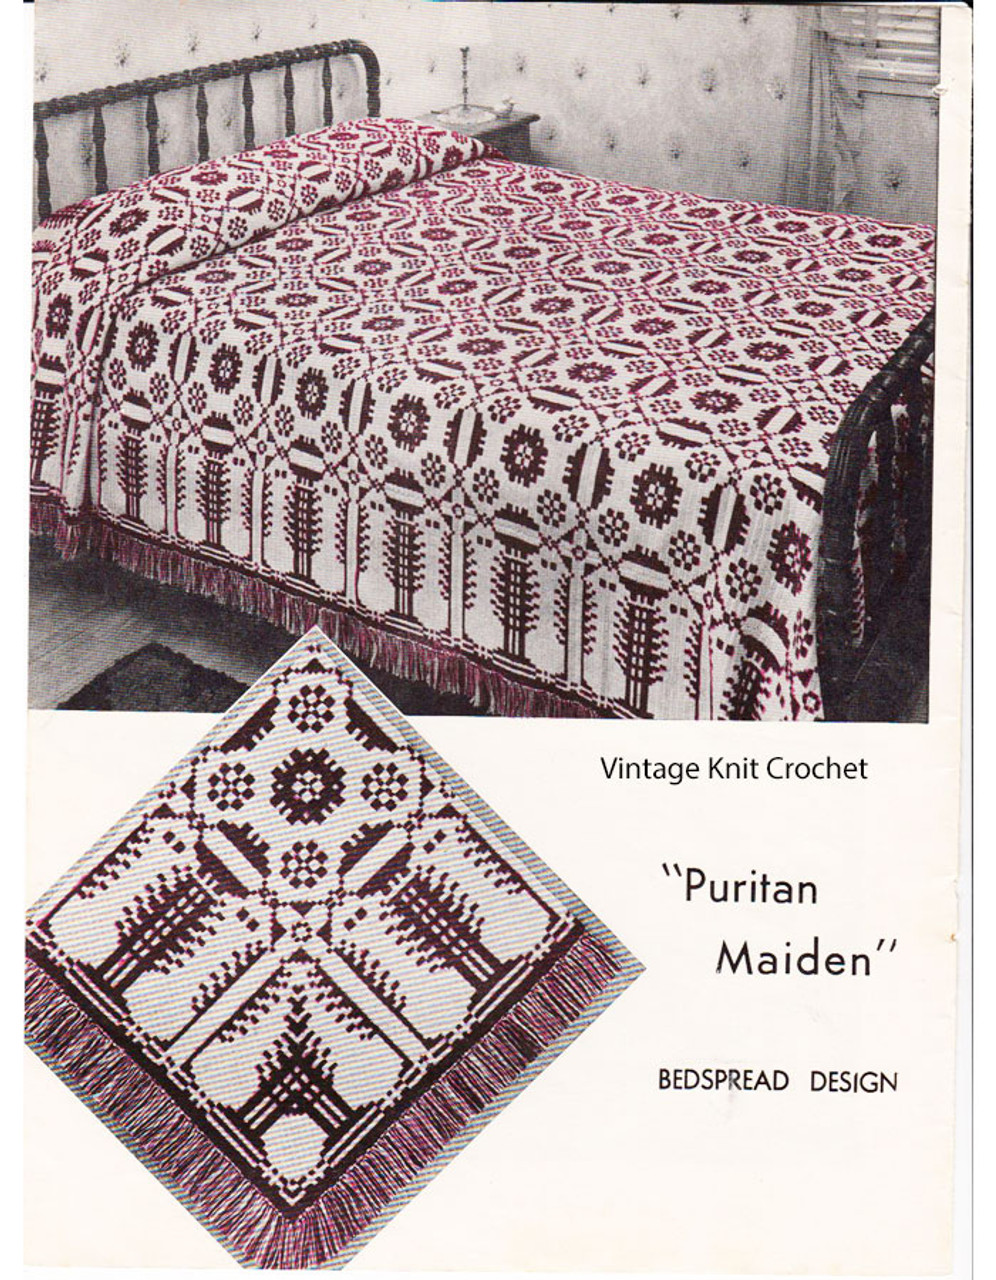 Filet Crochet Bedspread Blocks Pattern, Vintage 1940s